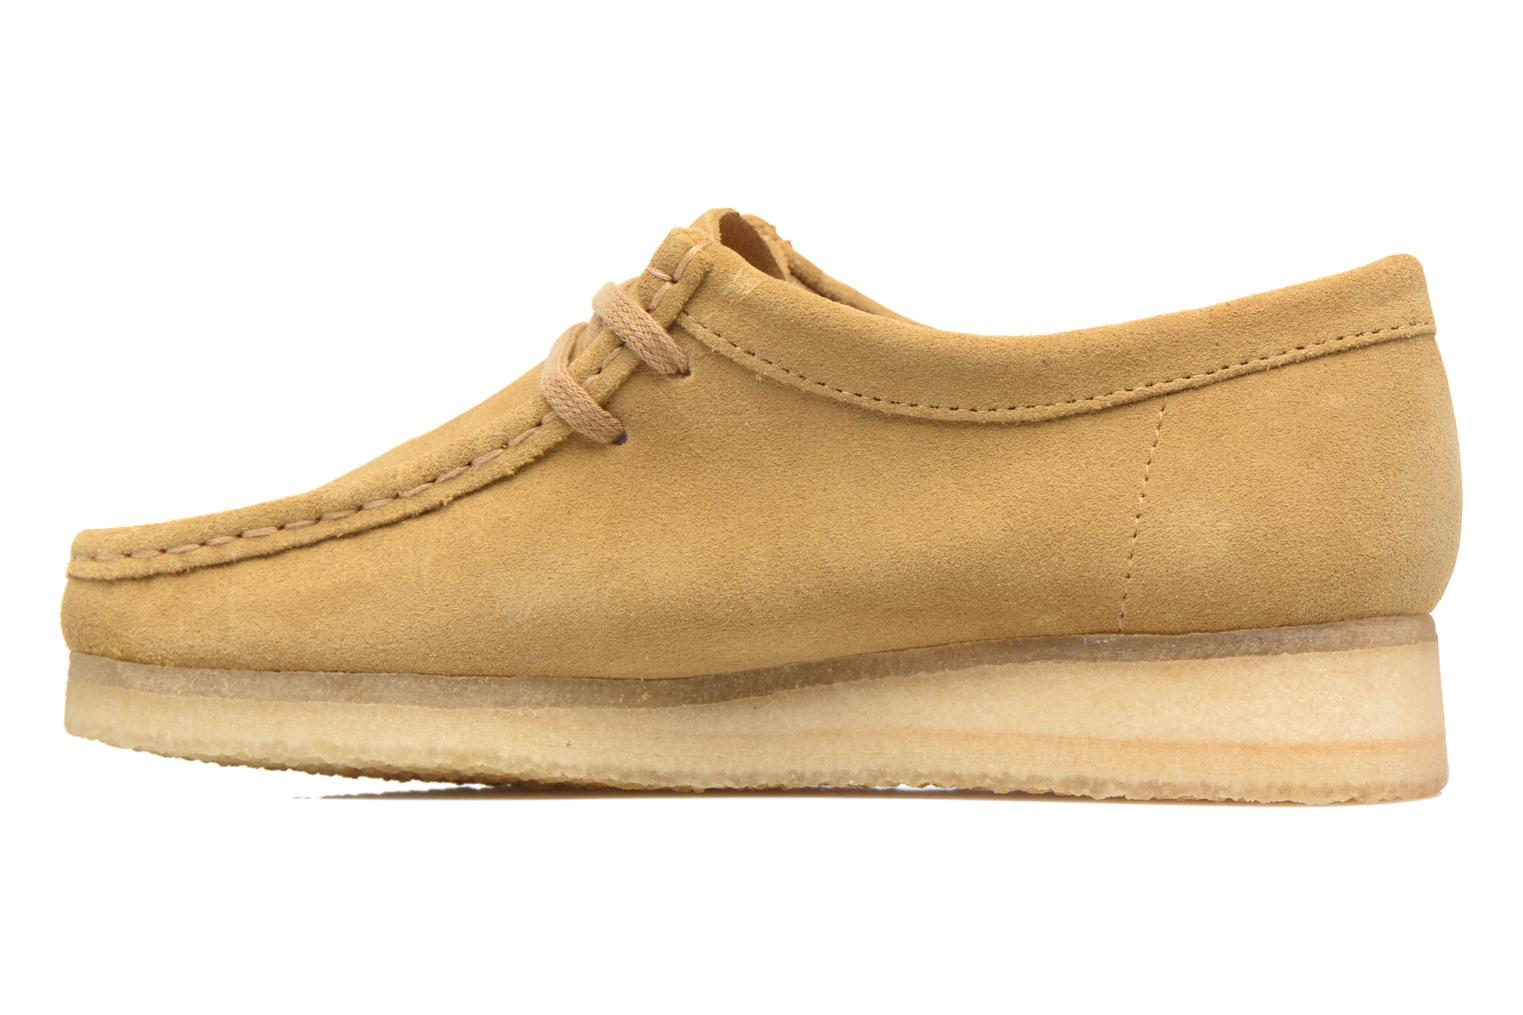 Lace-up shoes Clarks Originals Wallabee W Beige front view